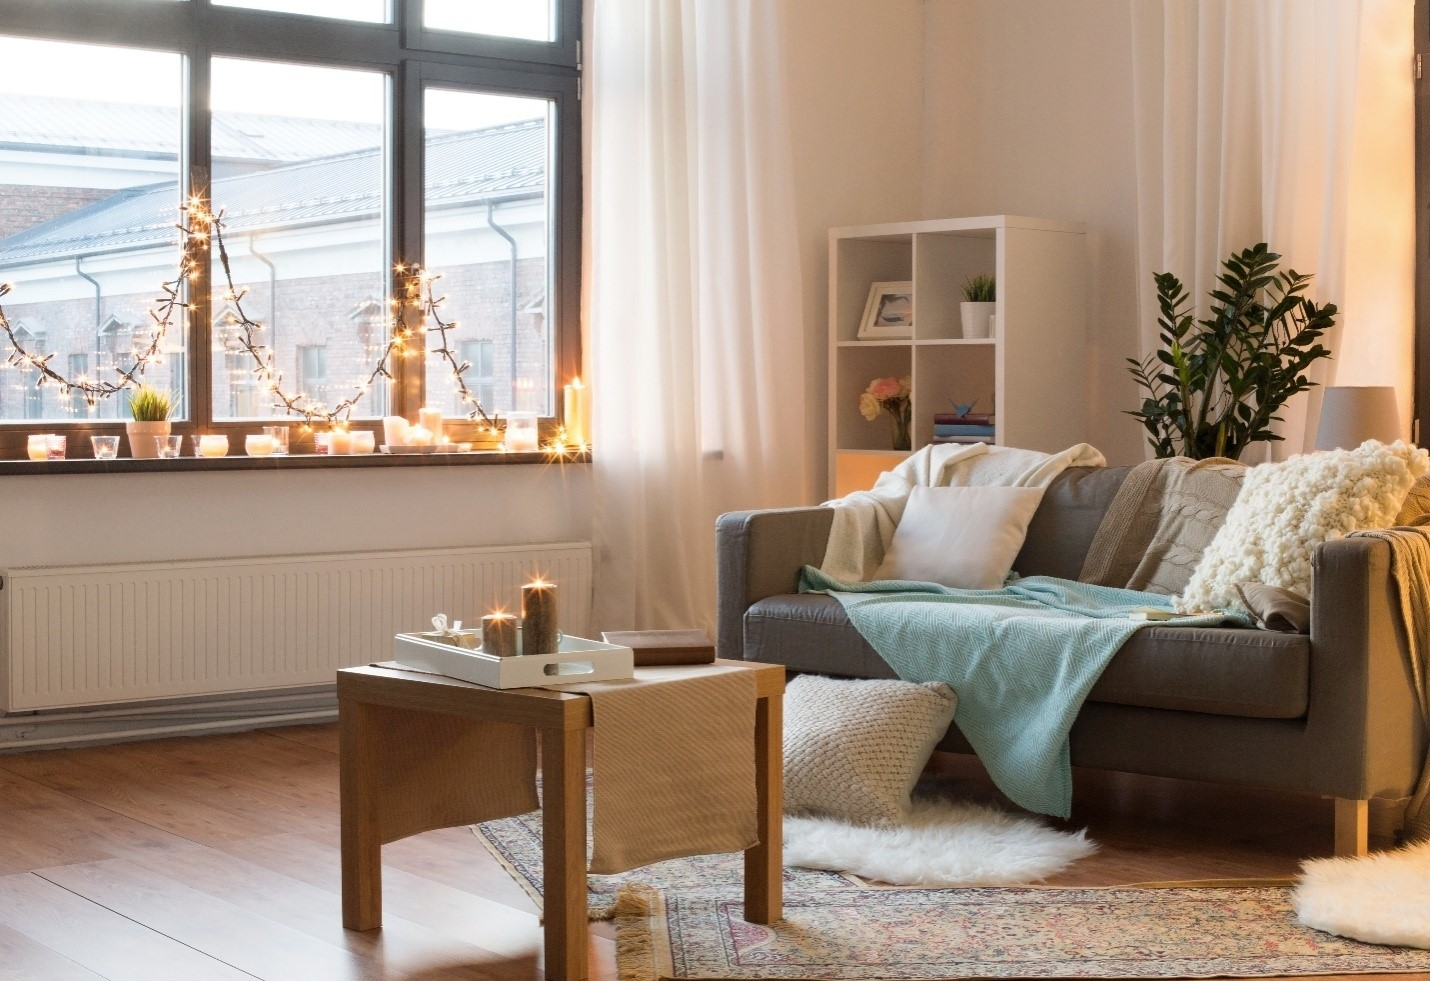 Changes to Make in Your Home Decor for the Upcoming Festive Season